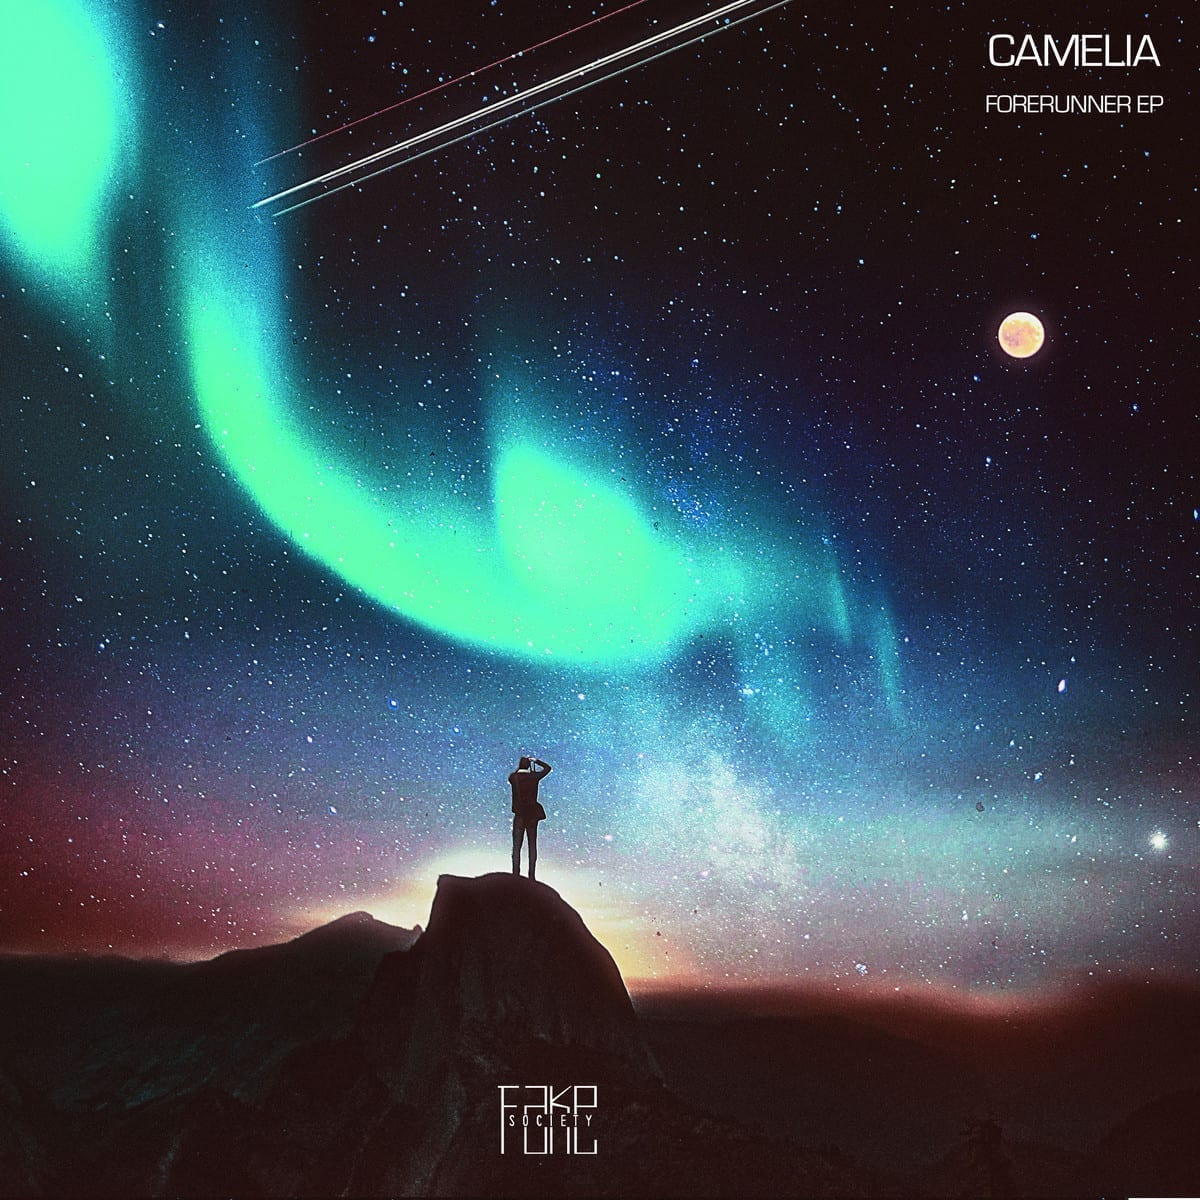 camelia - forerunner ep [fake society] front